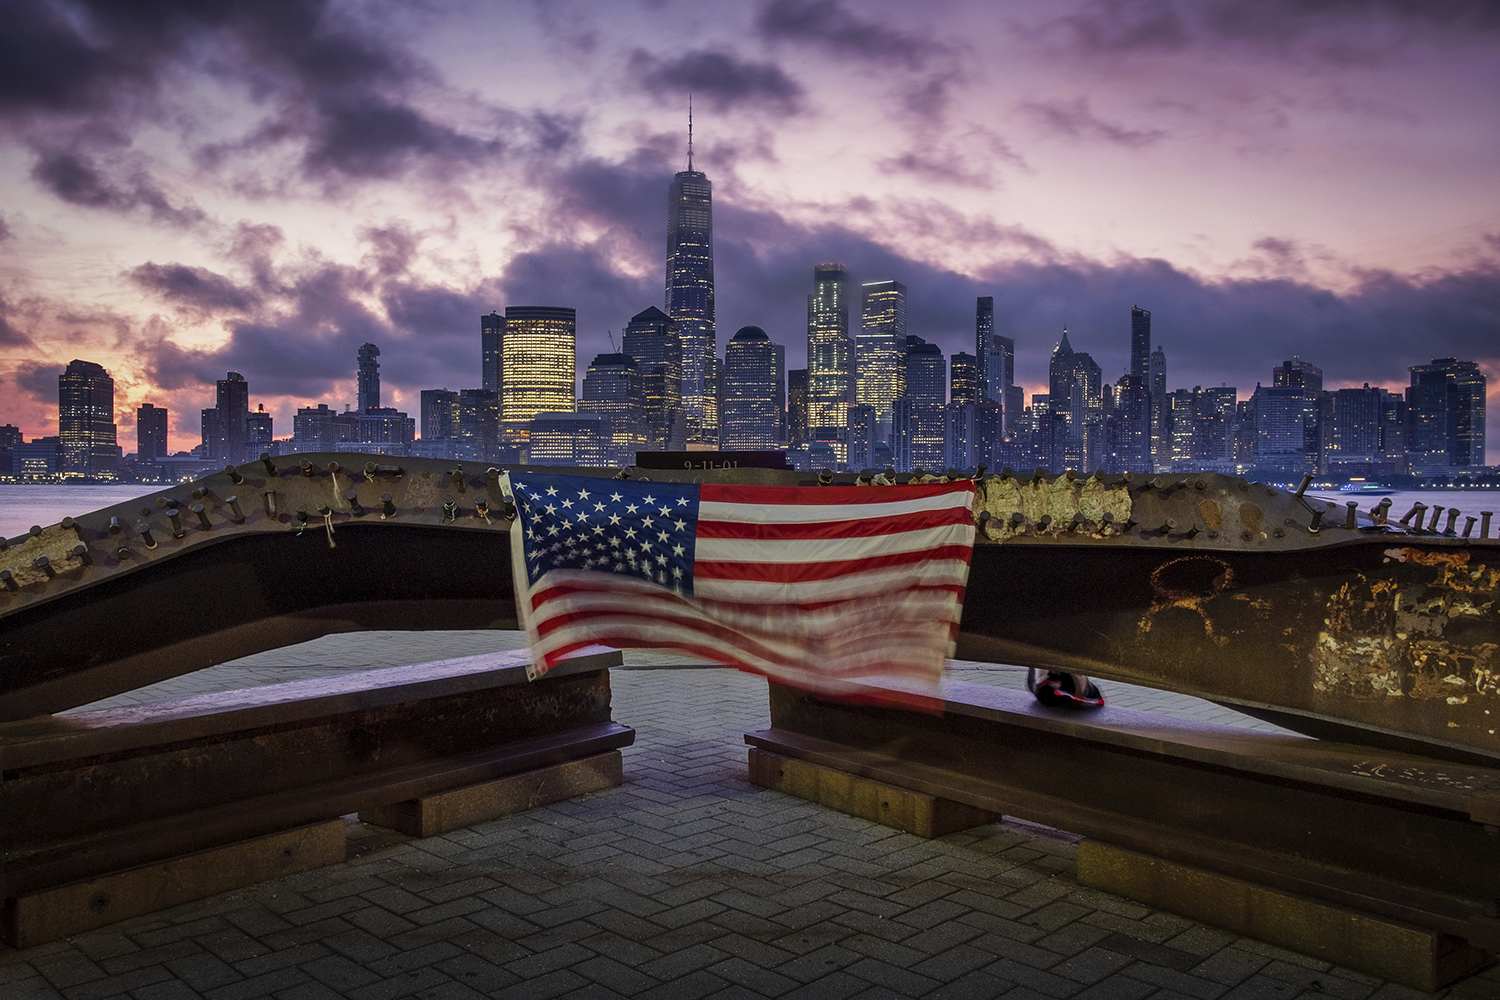 A U.S. flag hanging from a steel girder, damaged in the Sept. 11, 2001, attacks on the World Trade Center, blows in the breeze at a memorial in Jersey City, N.J., Sept. 11, 2019, as the sun rises behind One World Trade Center building and the re-developed area where the Twin Towers of World Trade Center once stood in New York City on the 18th anniversary of the attacks. (J. David Ake/AP)